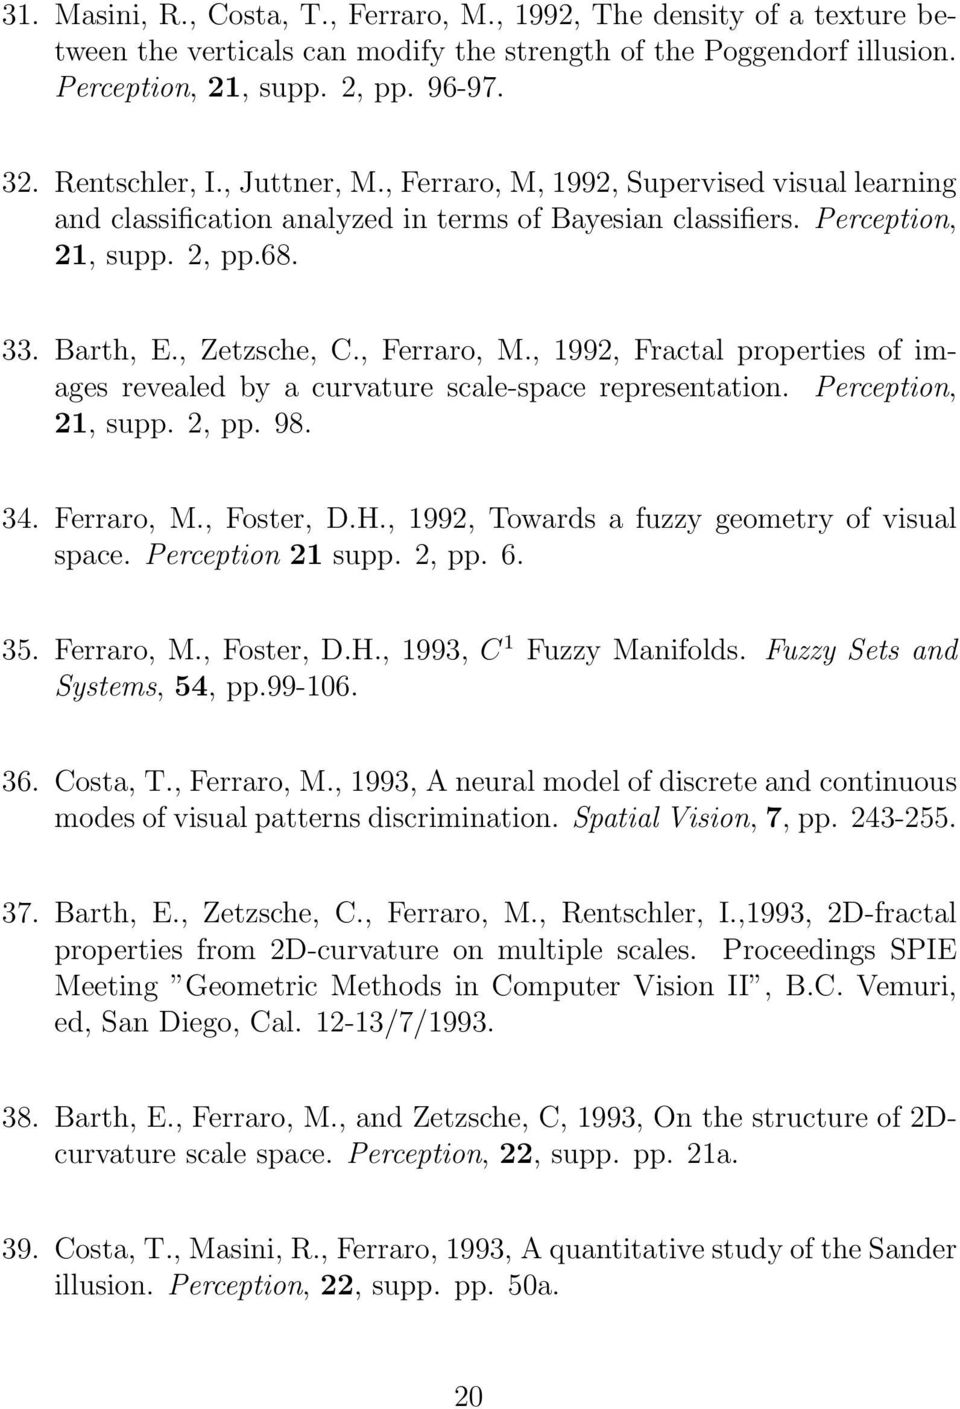 Perception, 21, supp. 2, pp. 98. 34. Ferraro, M., Foster, D.H., 1992, Towards a fuzzy geometry of visual space. Perception 21 supp. 2, pp. 6. 35. Ferraro, M., Foster, D.H., 1993, C 1 Fuzzy Manifolds.